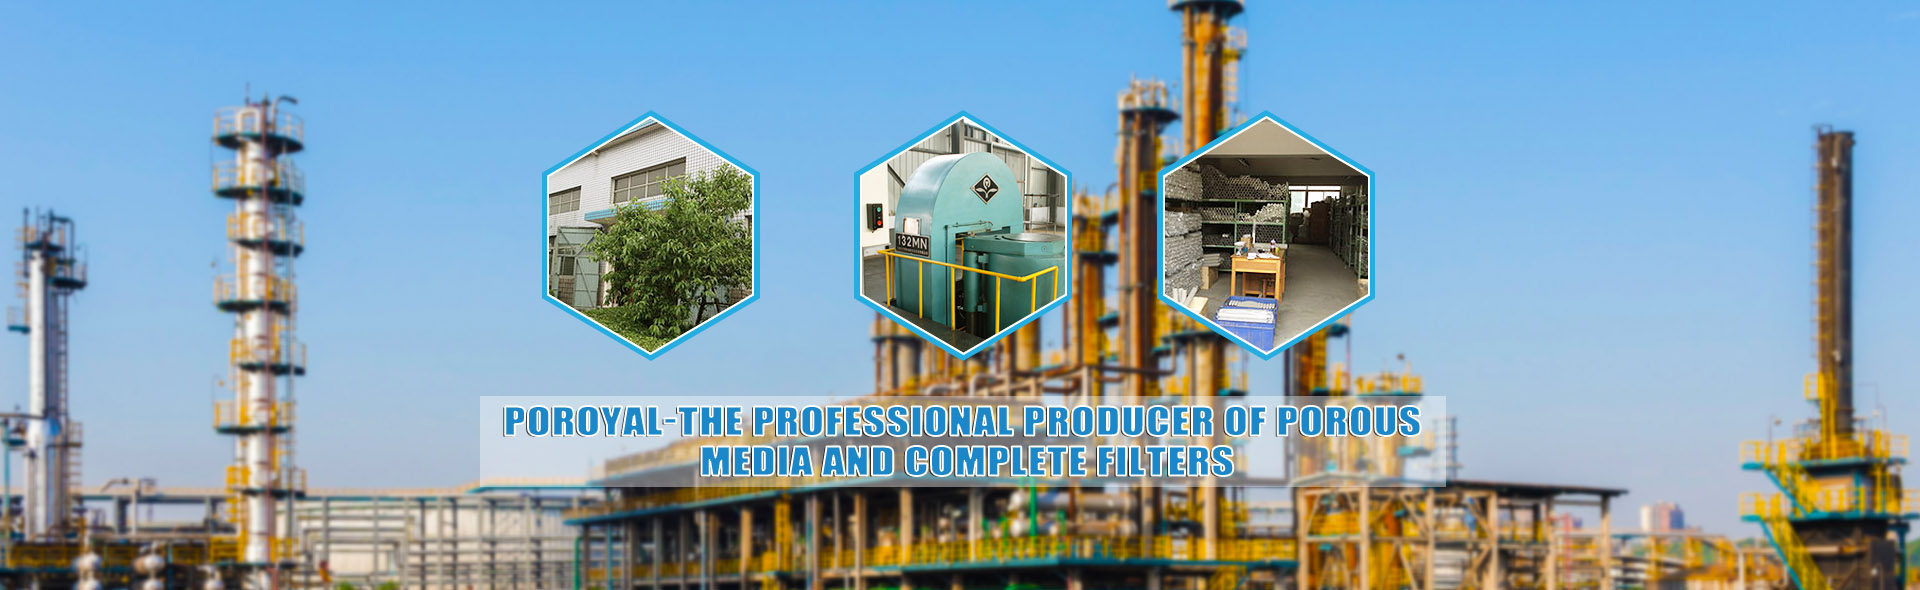 POROYAL-THE PROFESSIONAL PRODUCER OF POROUS  MEDIA AND COMPLETE FILTERS